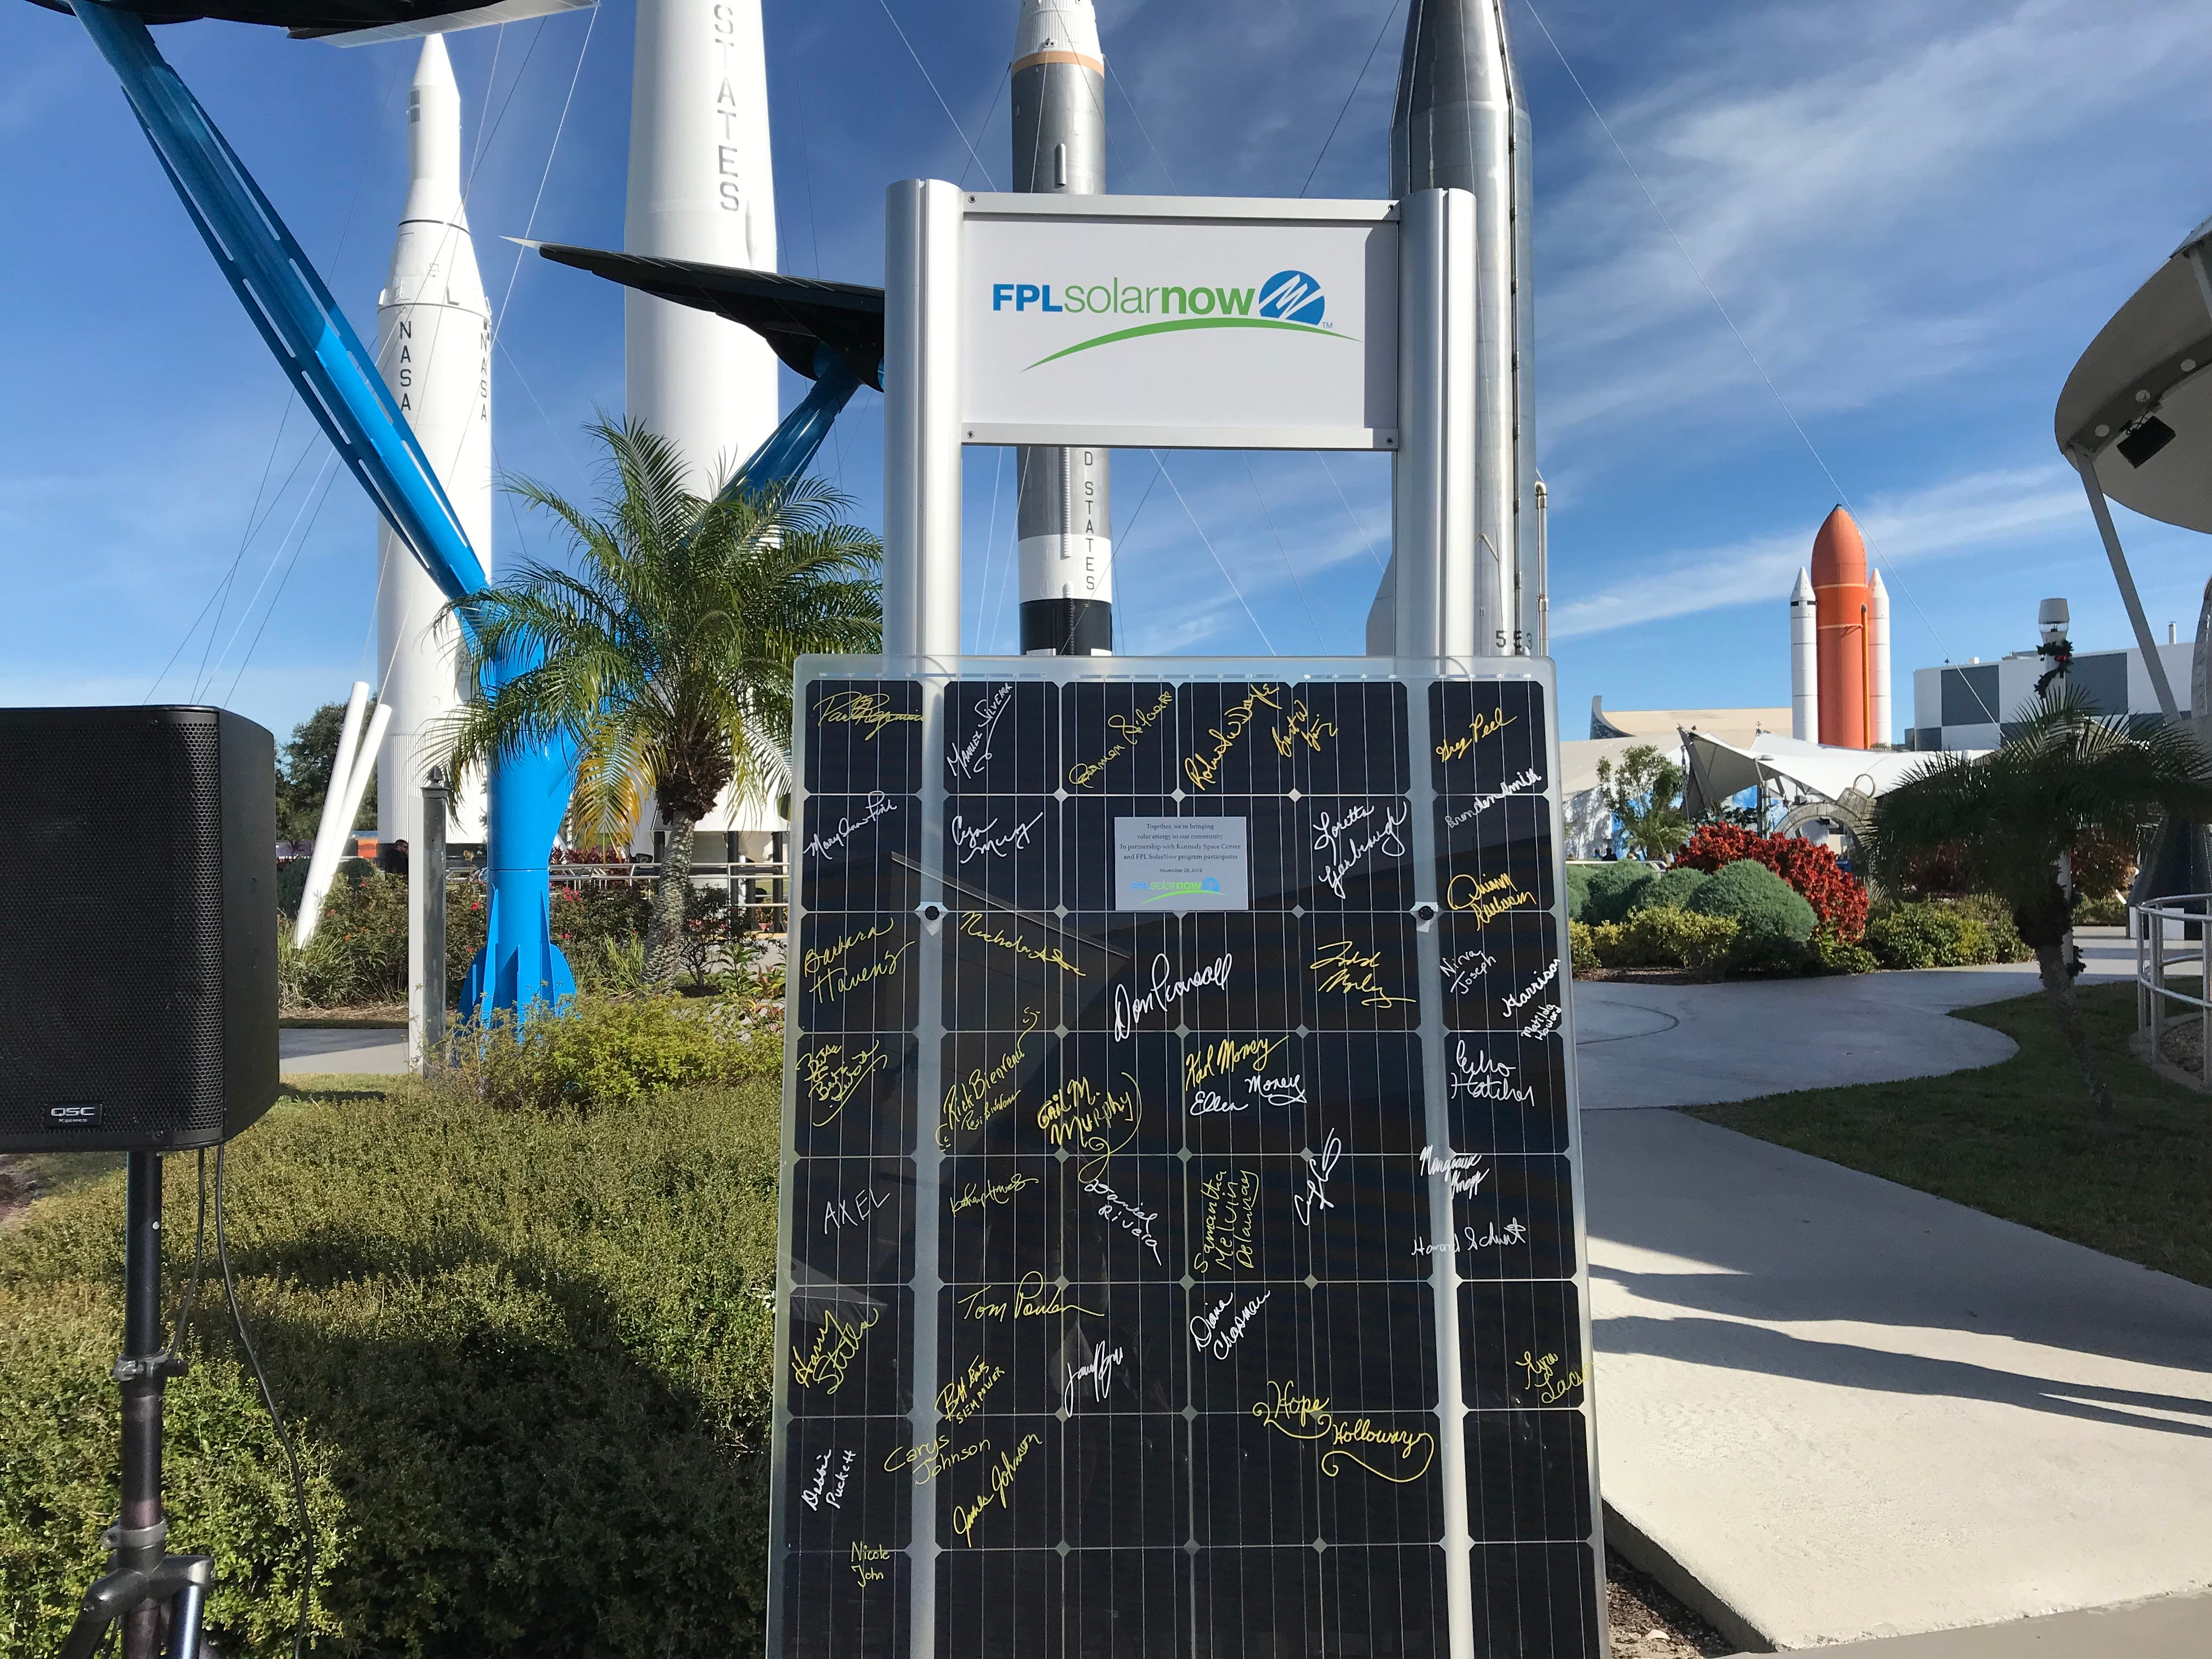 Signatures of Florida Power & Light SolarNow participants on the decorative solar panel at Kennedy Space Center Visitor Complex.